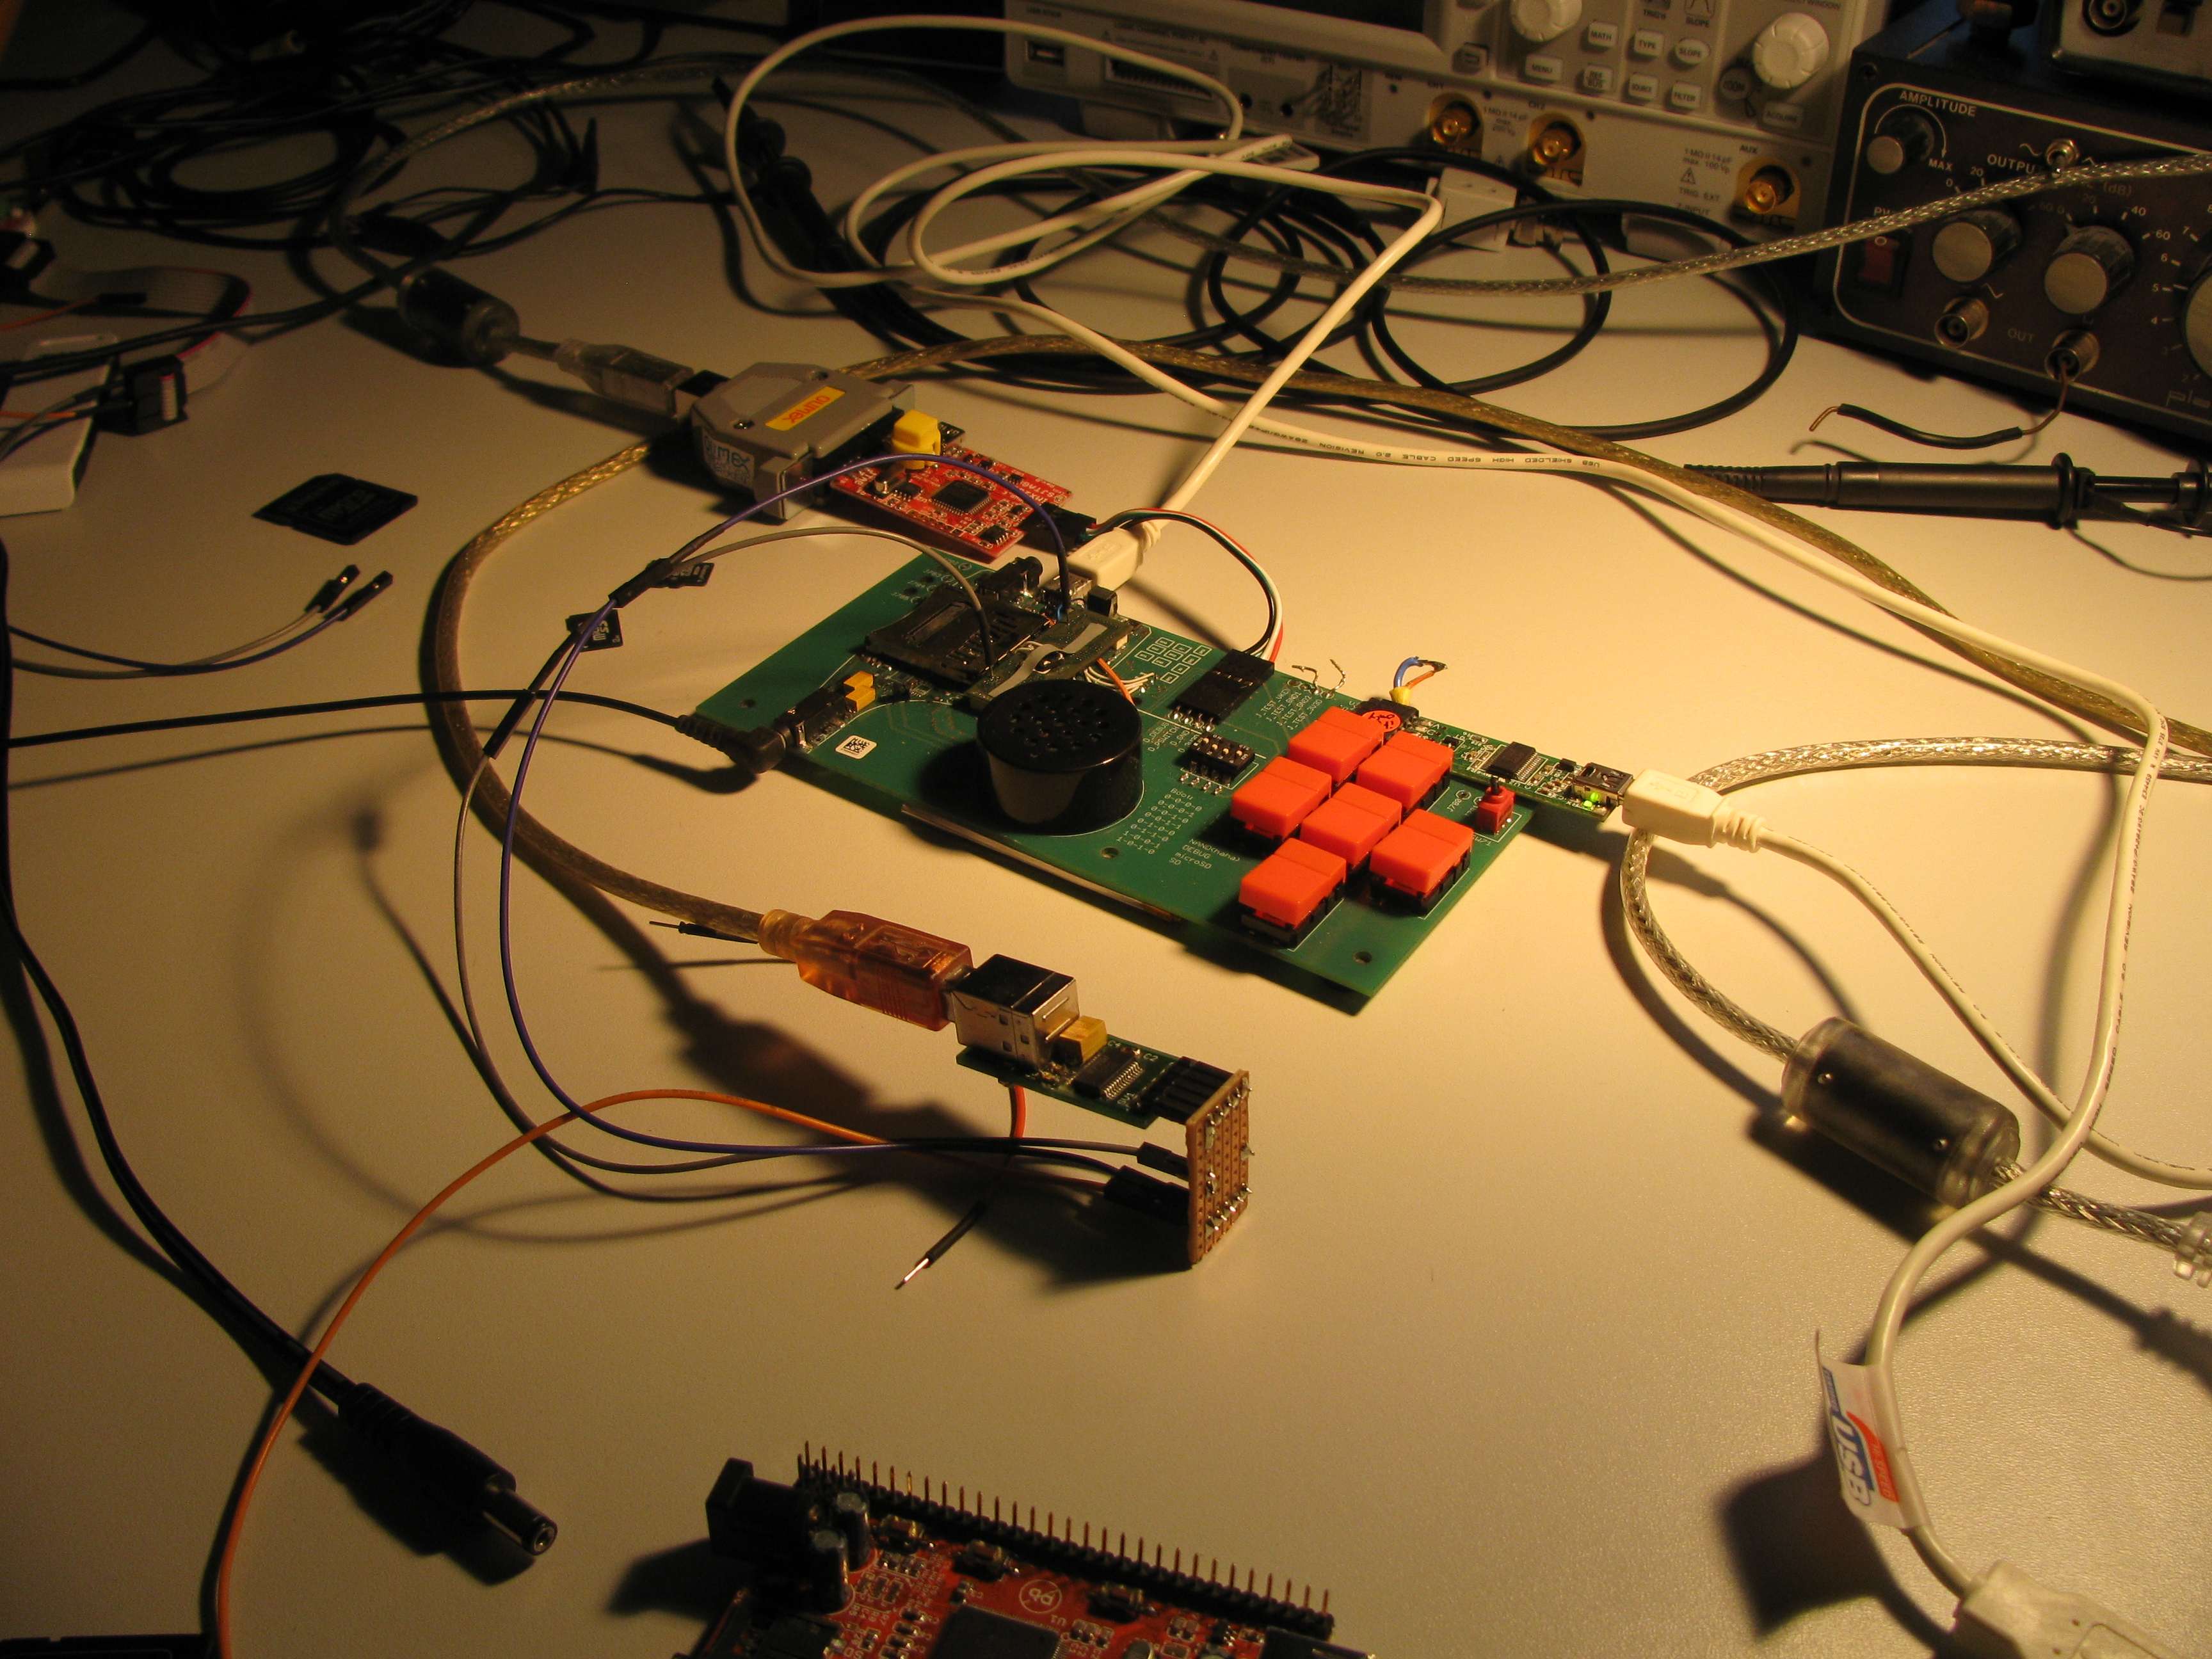 Porting Linux to a new board — Christian's Blog